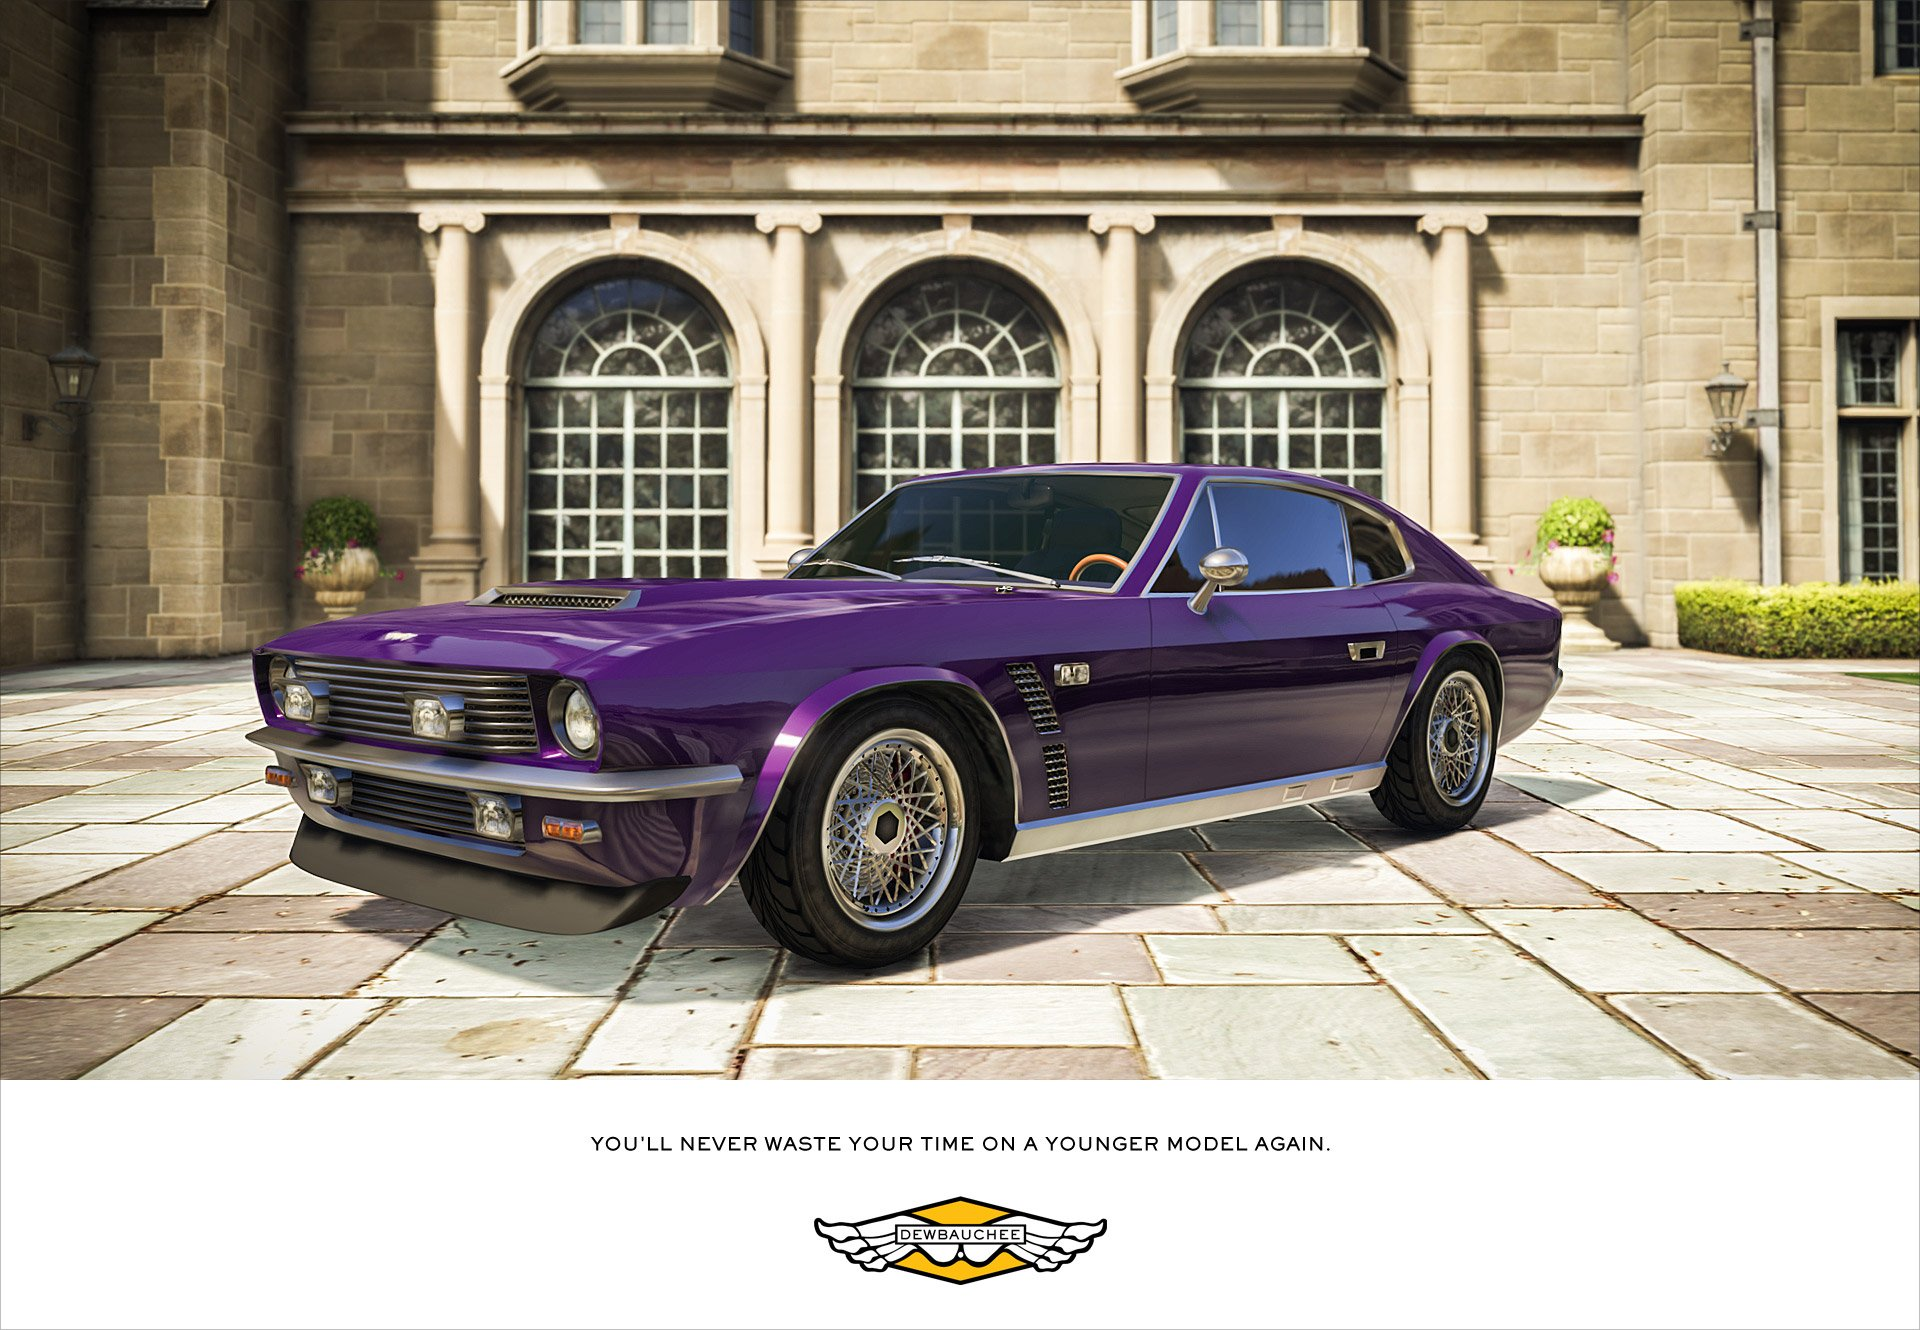 DEWBAUCHEE RAPID GT SPORTS CLASSIC  Now available from Legendary Motorsport in #GTAOnline.  https://t.co/mBvCPlSuFW https://t.co/2c1DuPFYWK